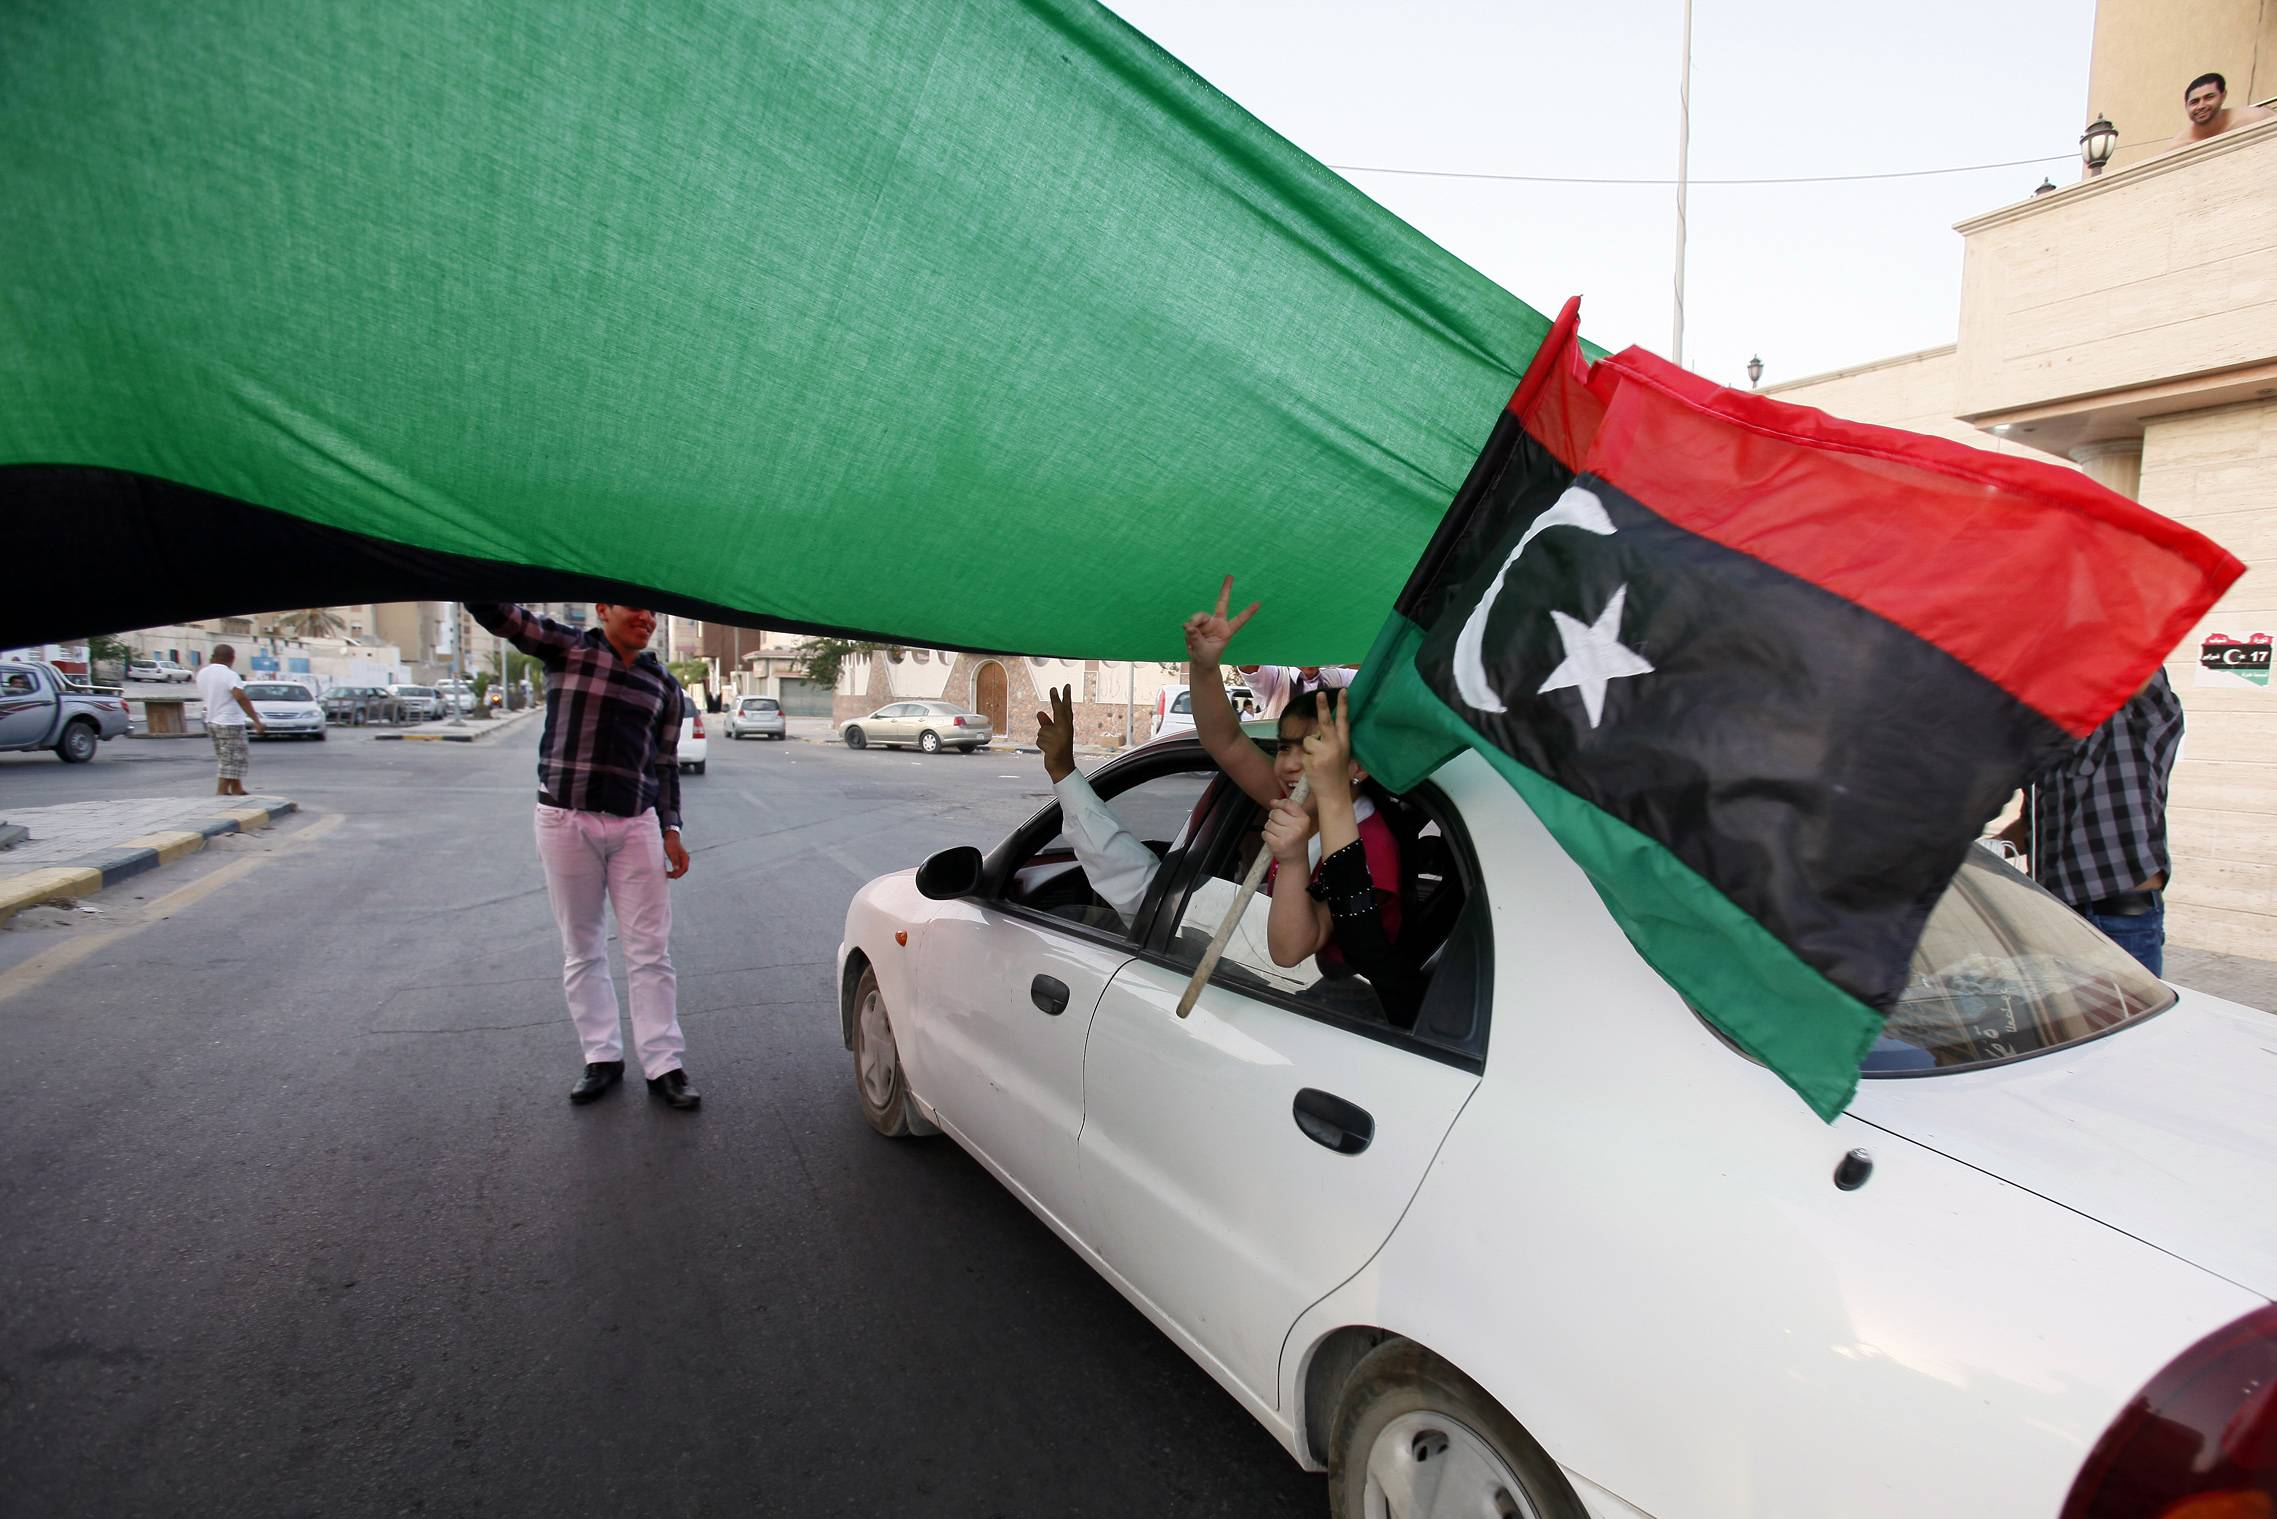 A Libyan girl waves the former Libyan flag from a car driving under a giant flag in the street of Jamal Goubtan district inTripoli, Libya, Thursday. A TV station is quoting Moammar Gadhafi as warning that tribes loyal to him in key strongholds are armed and won't surrender to Libyan rebels. Thursday's report on Syrian-based Al-Rai TV comes as the rebels who have seized control of most of the country extended by a week a deadline for the surrender of Gadhafi's hometown of Sirte - originally set for Saturday.